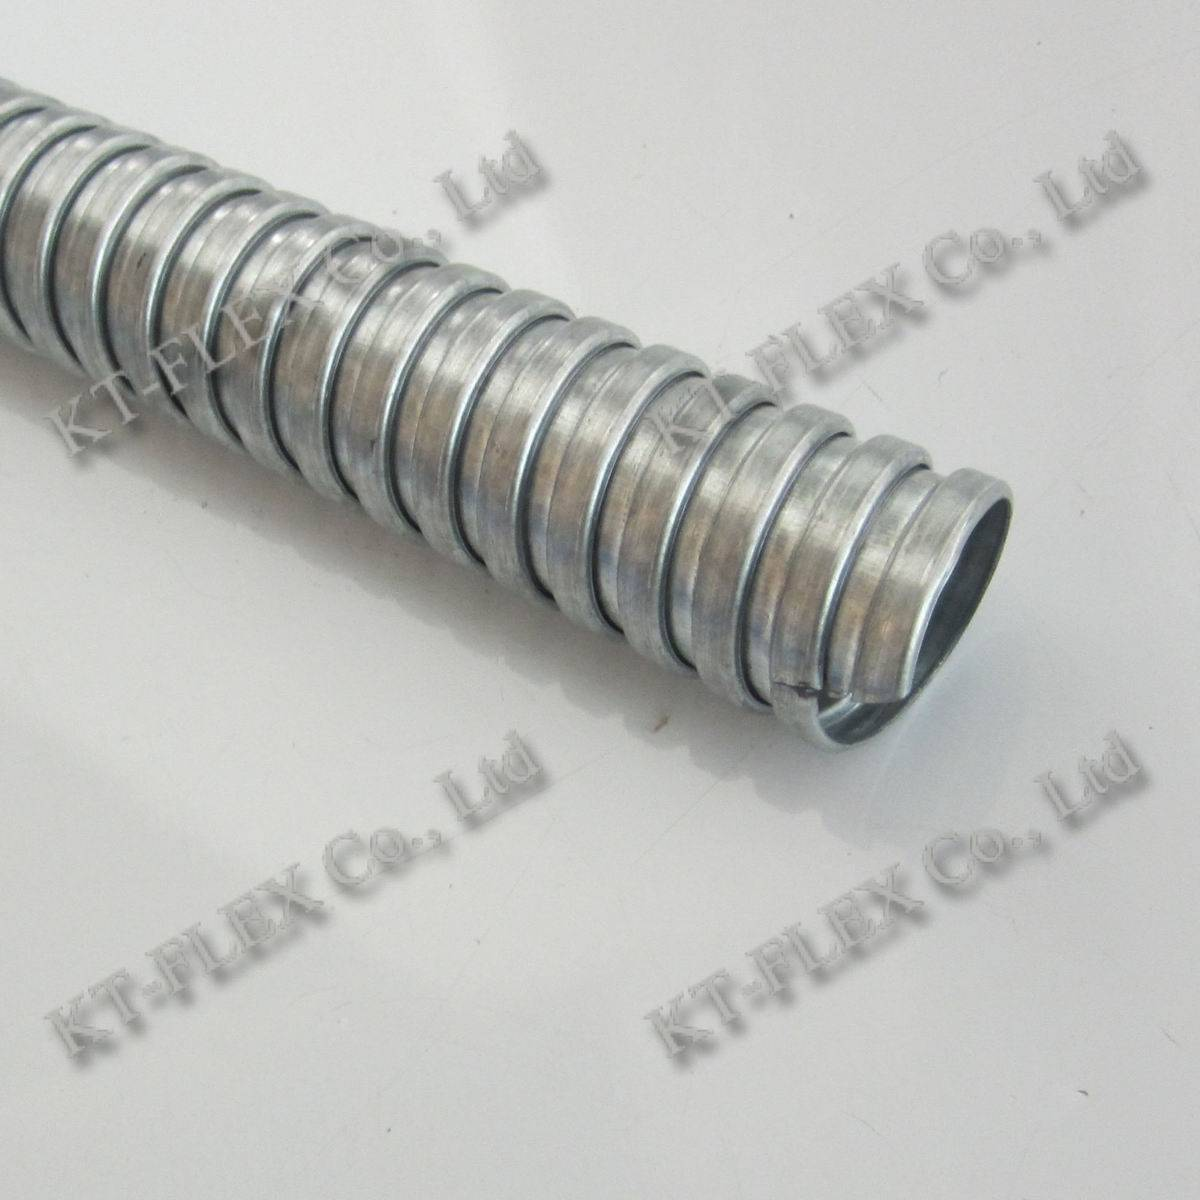 Squarelocked Gi Flexible Conduit